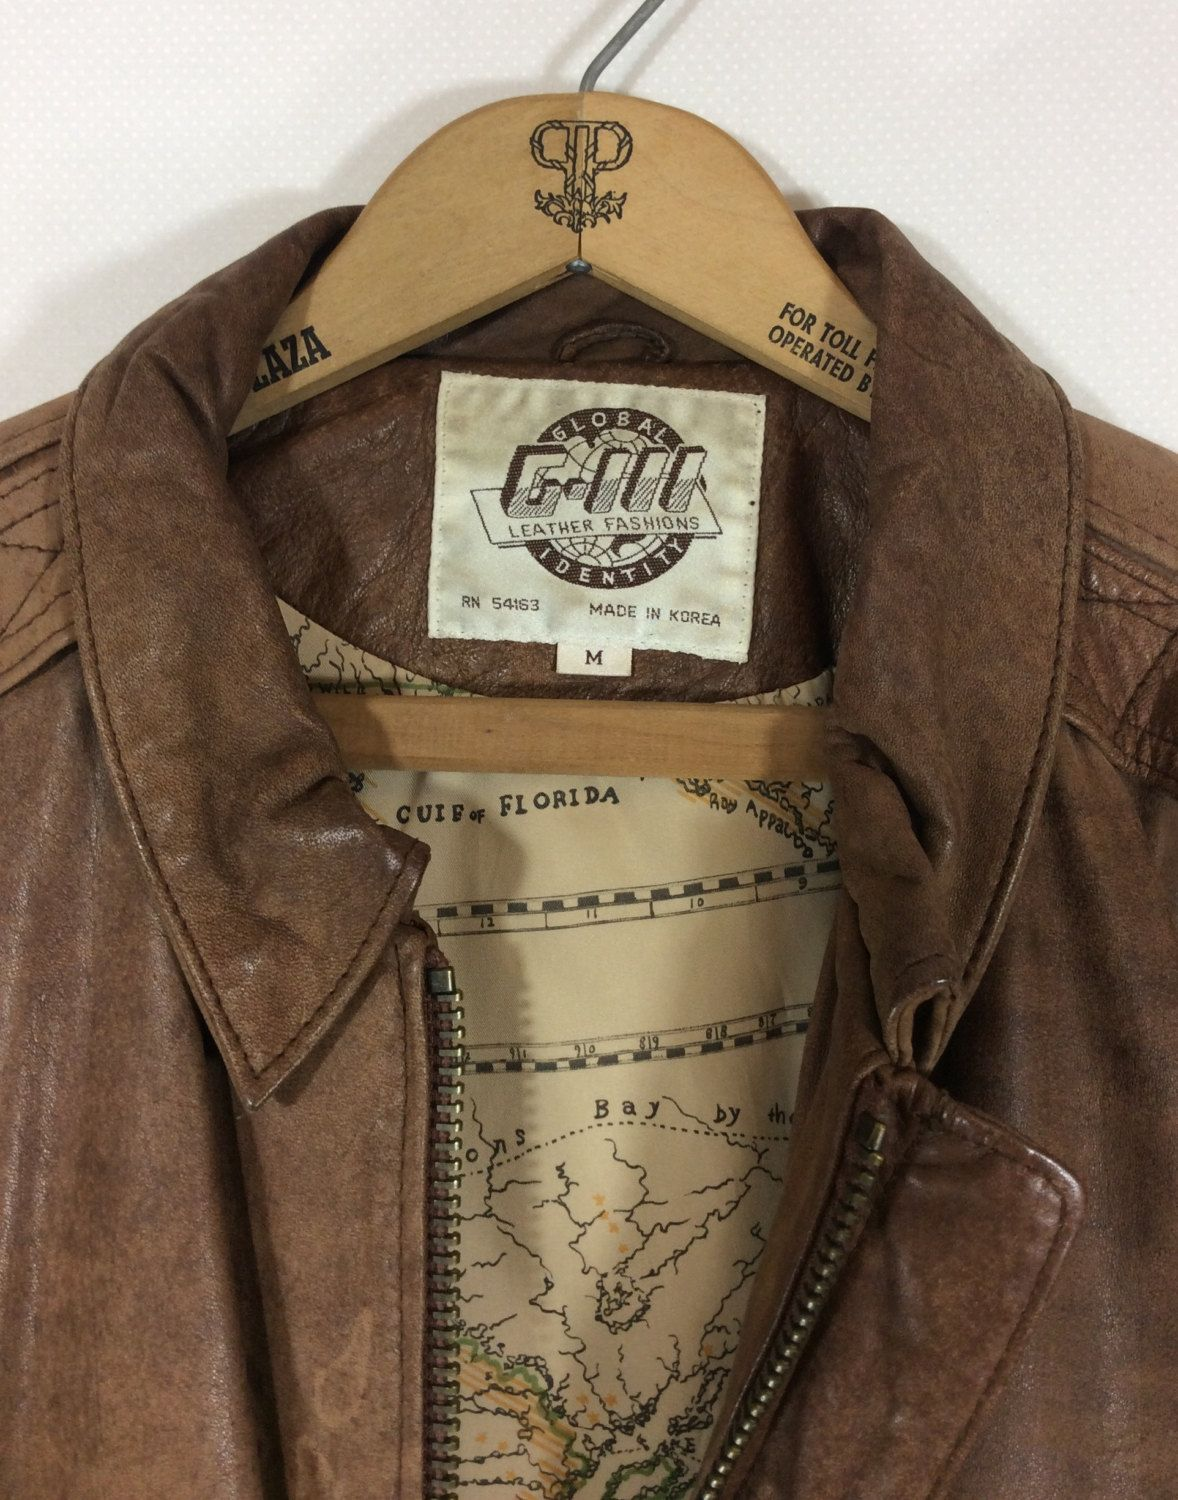 00aeccff2 Unisex Vintage Distressed Brown Leather Bomber Jacket with Escape ...